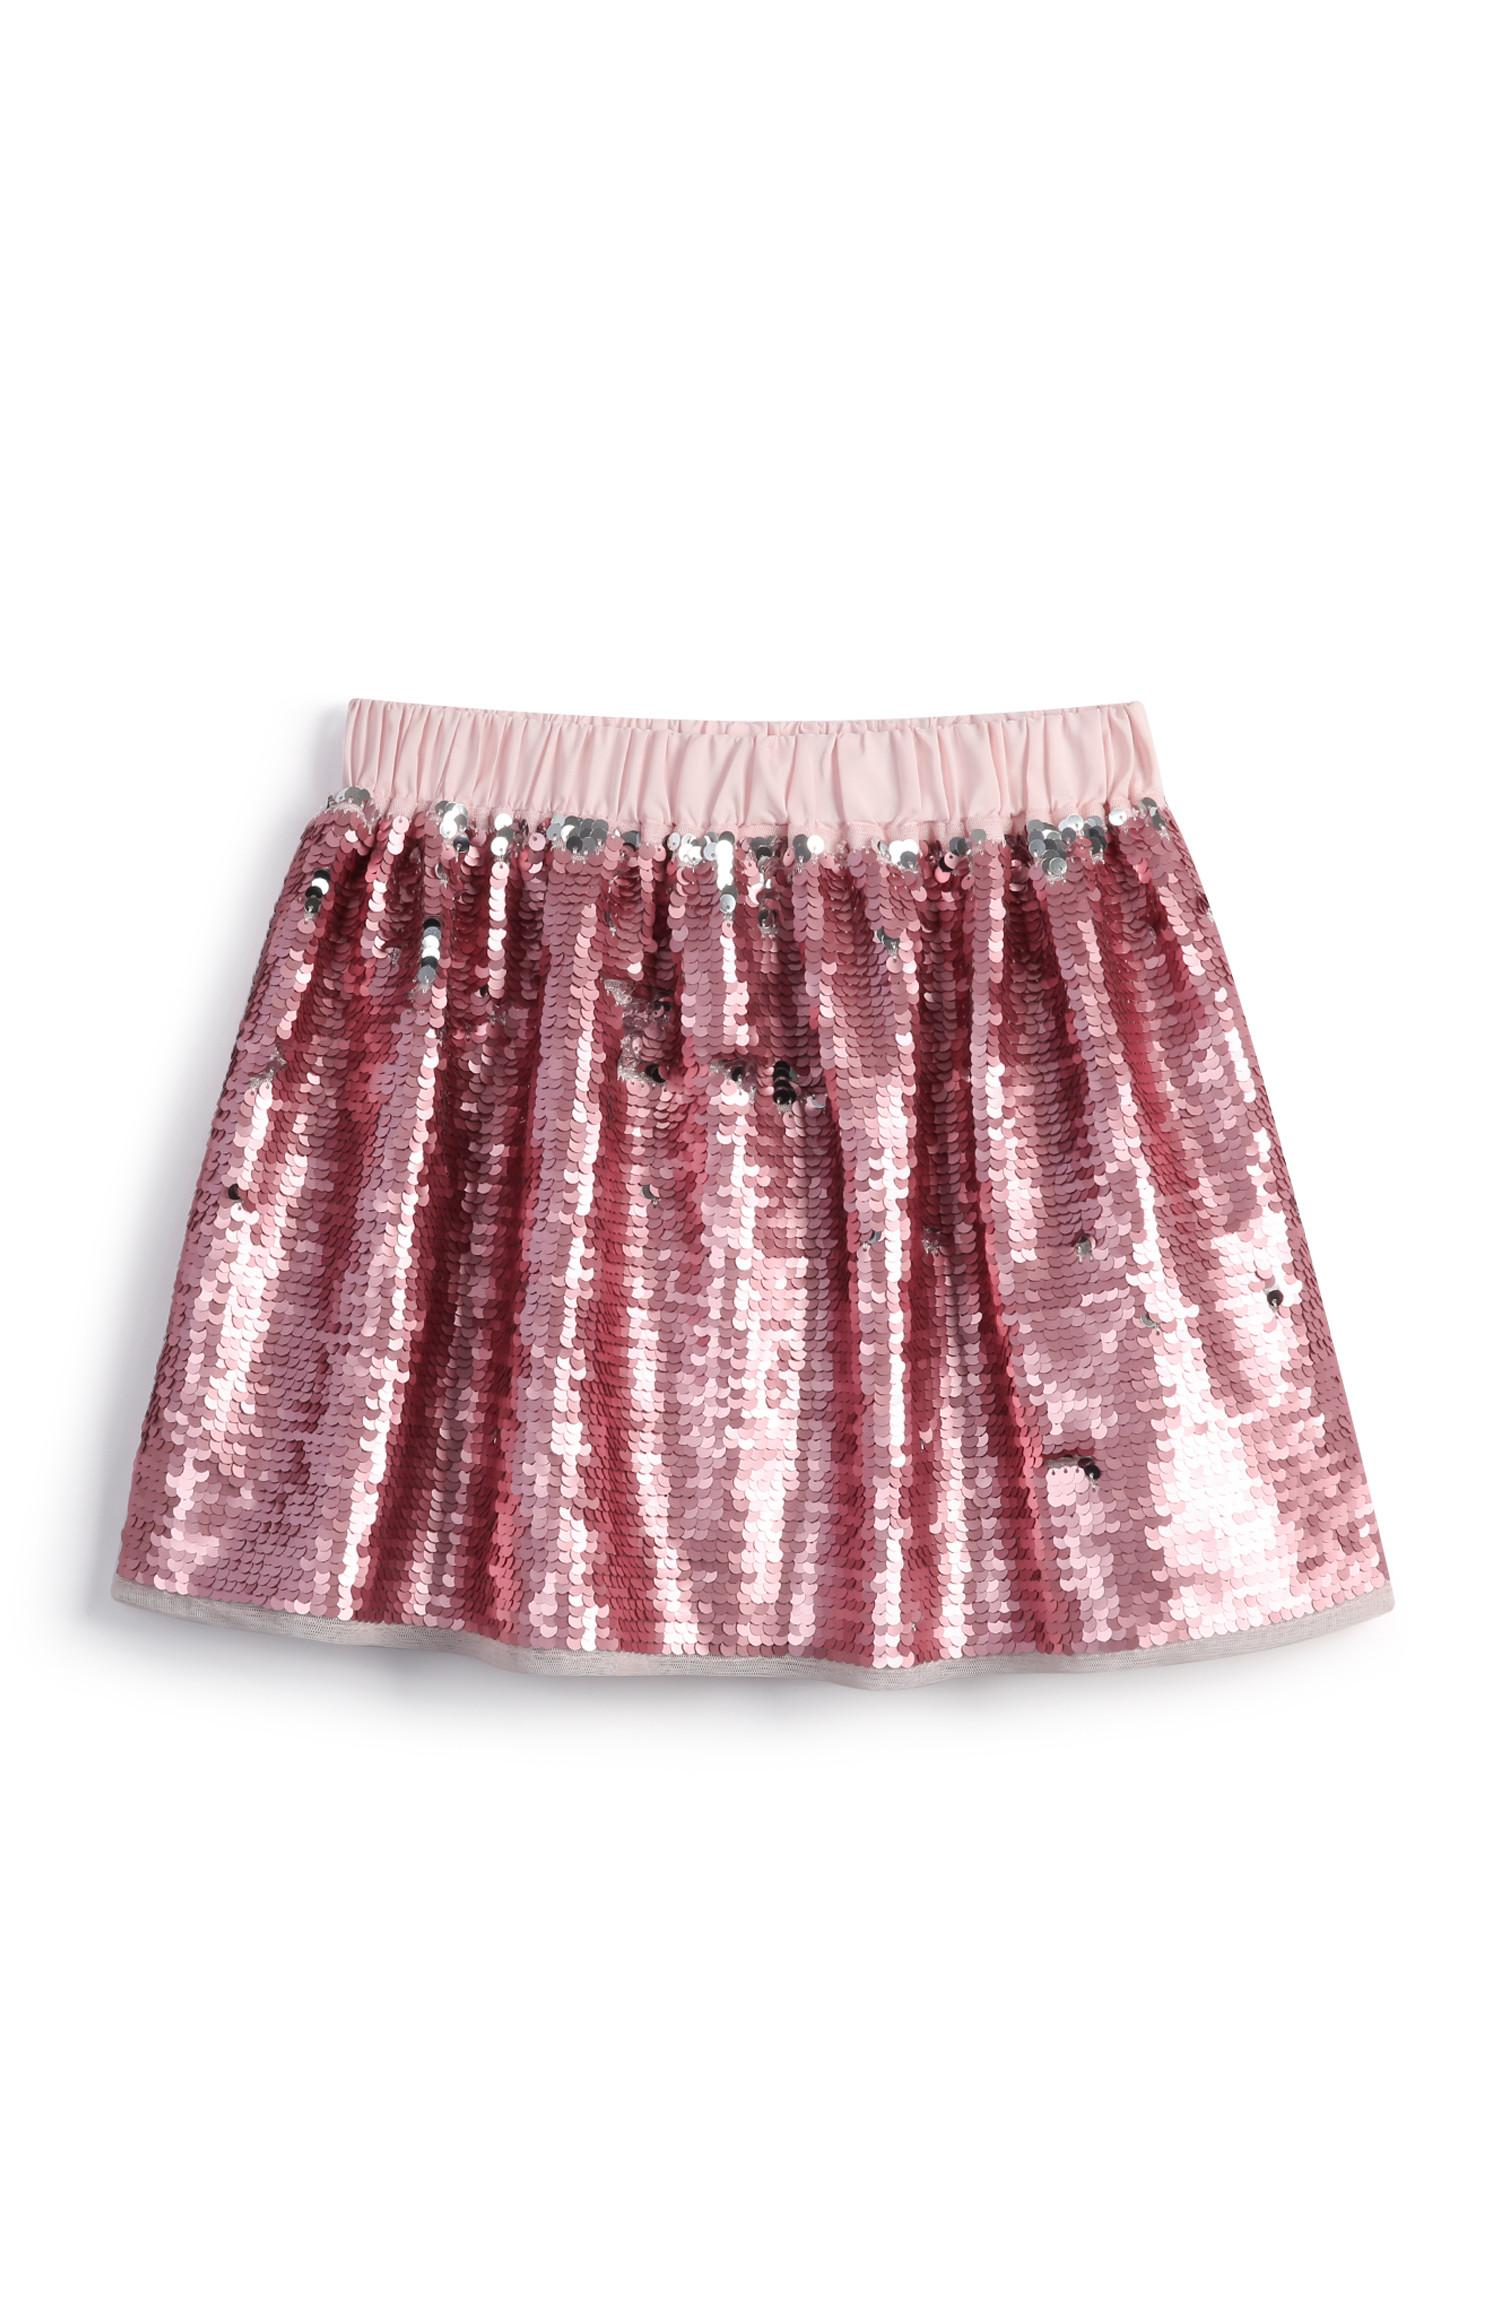 Younger Girl Pink Sequin Skirt